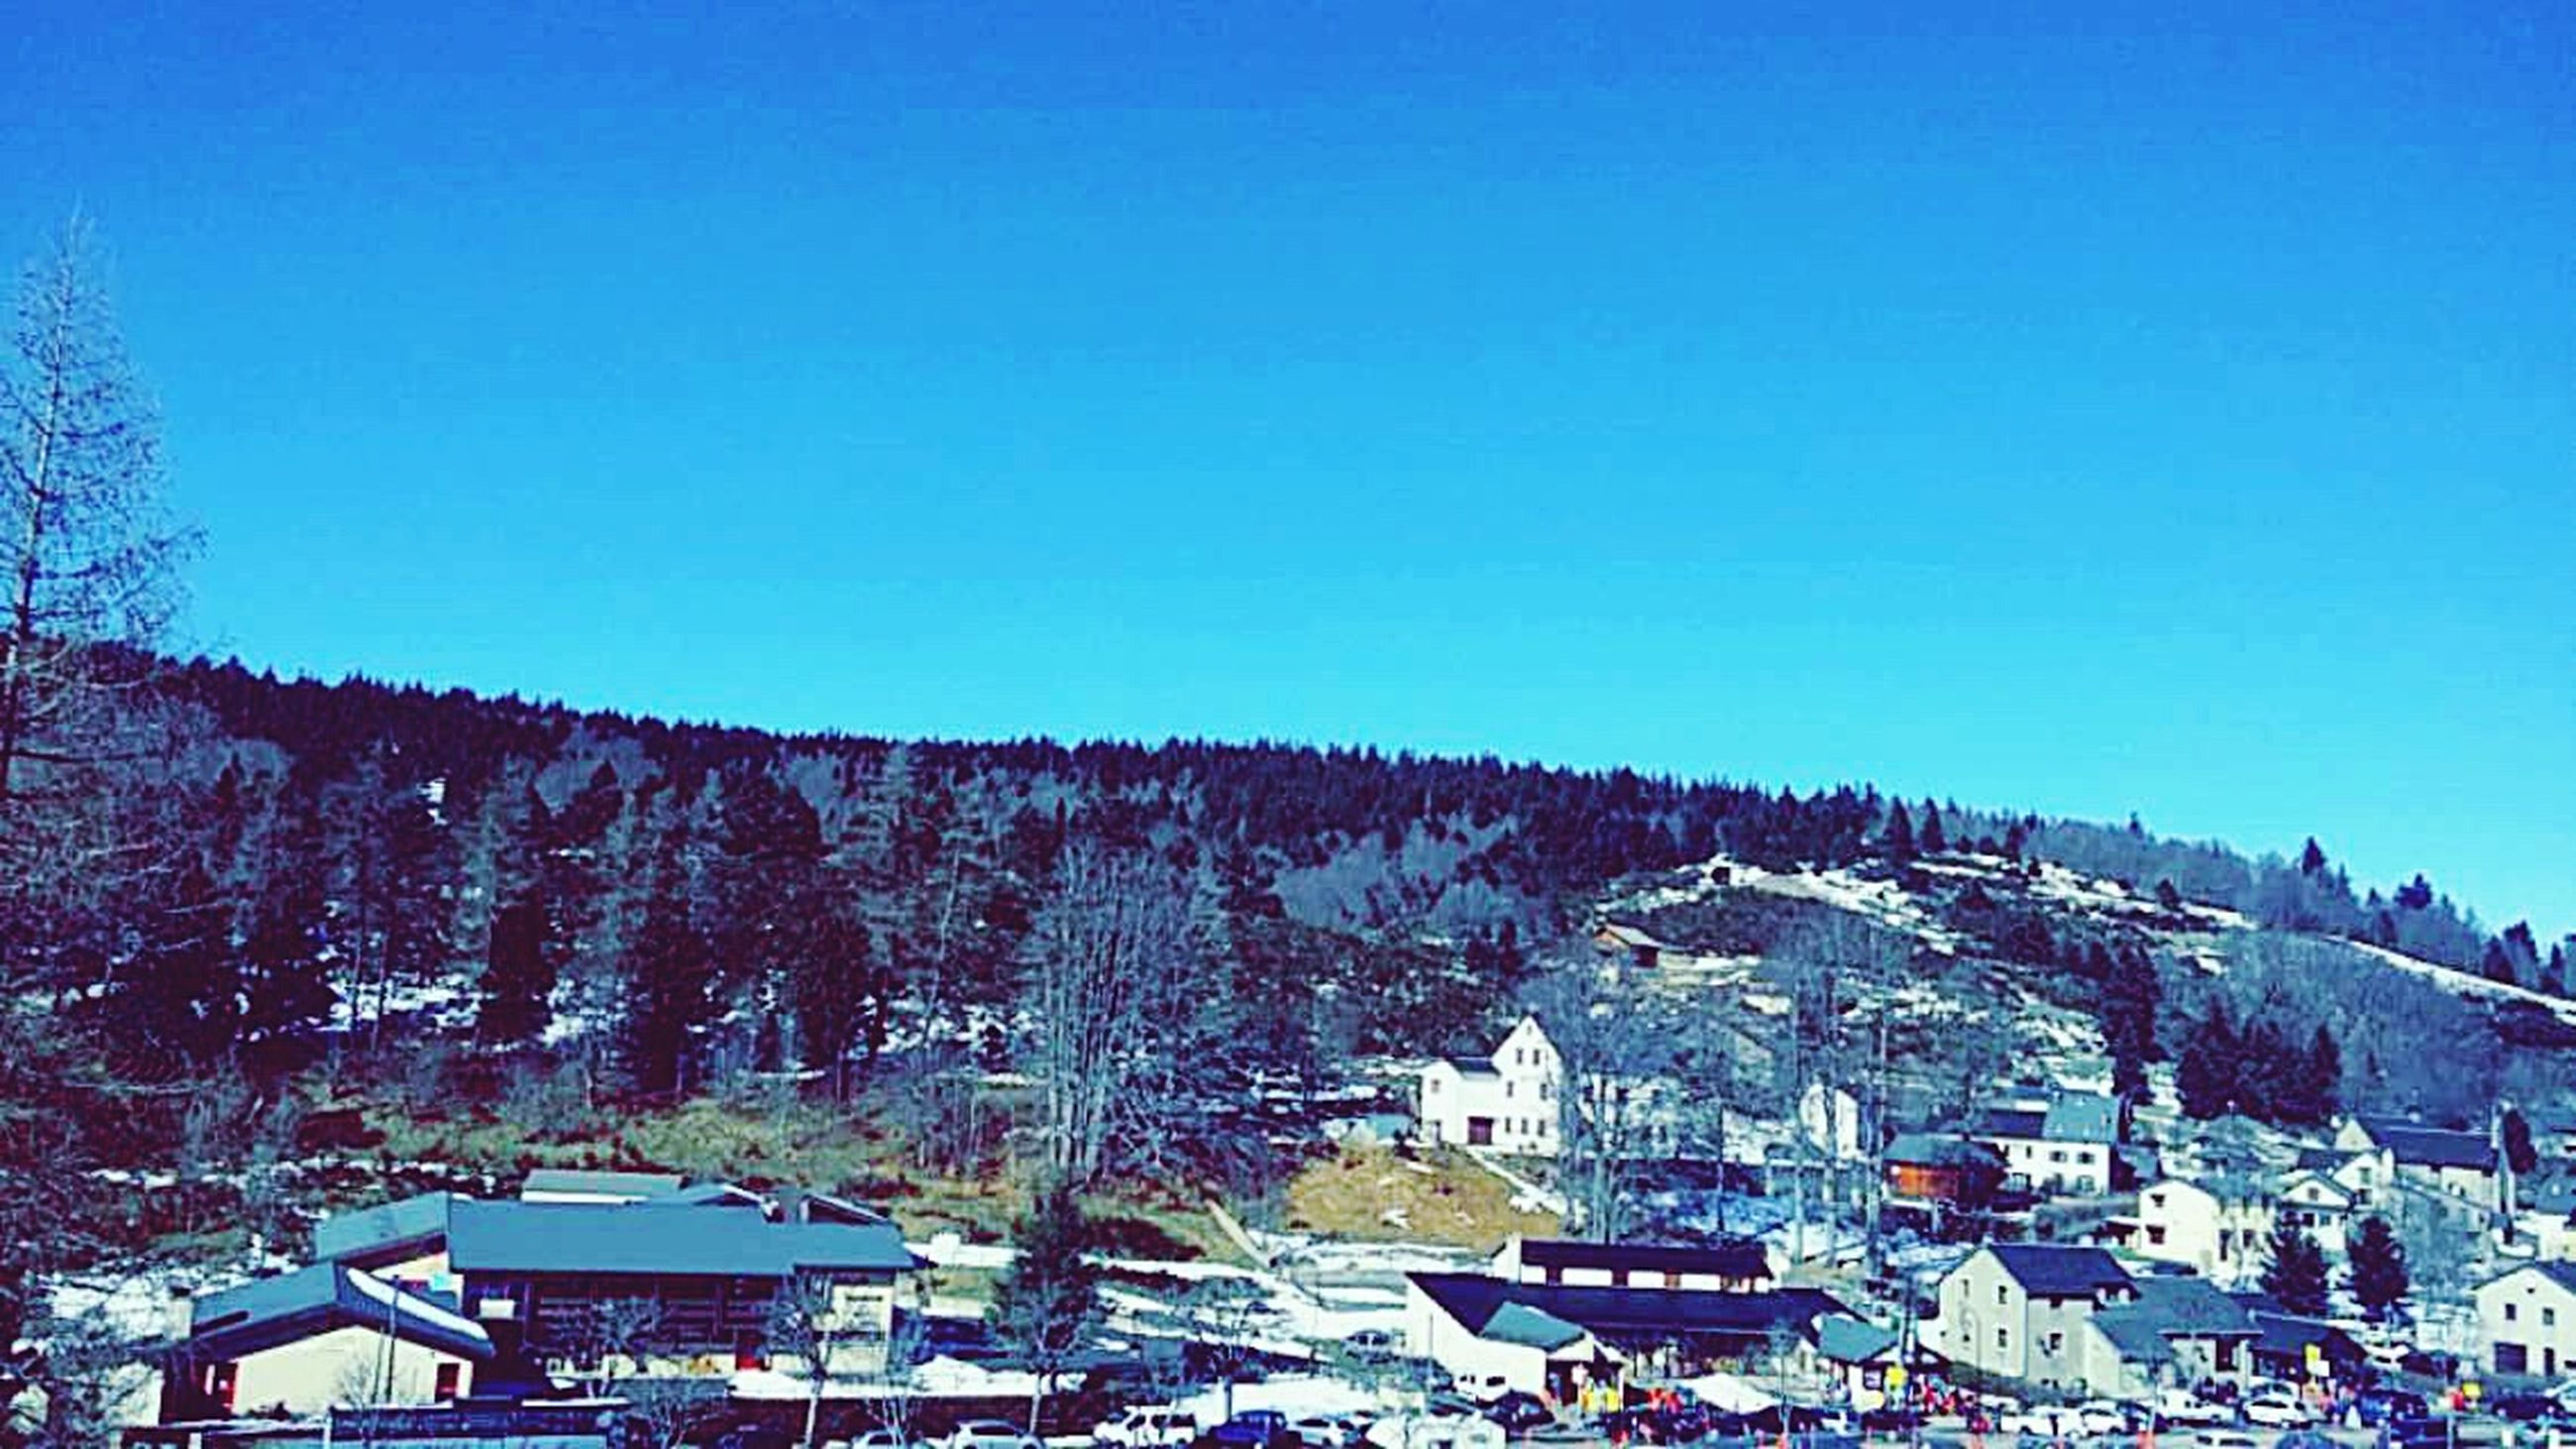 building exterior, architecture, built structure, clear sky, house, copy space, blue, residential structure, tree, residential building, mountain, town, day, outdoors, residential district, low angle view, high angle view, roof, no people, village